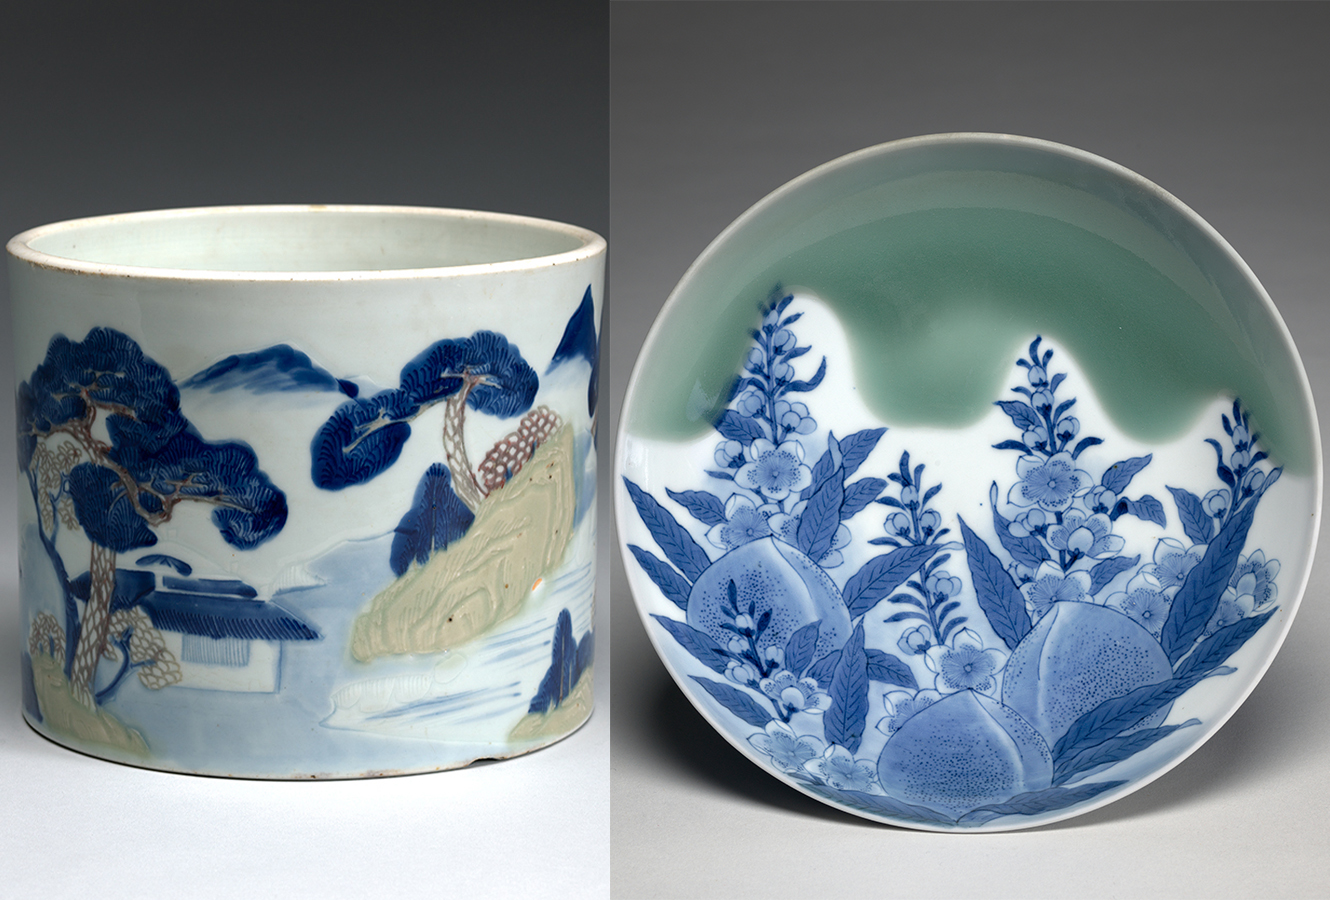 Painted pot with pine designs in blue. Painted plate with a design of peaches and bellflowers.